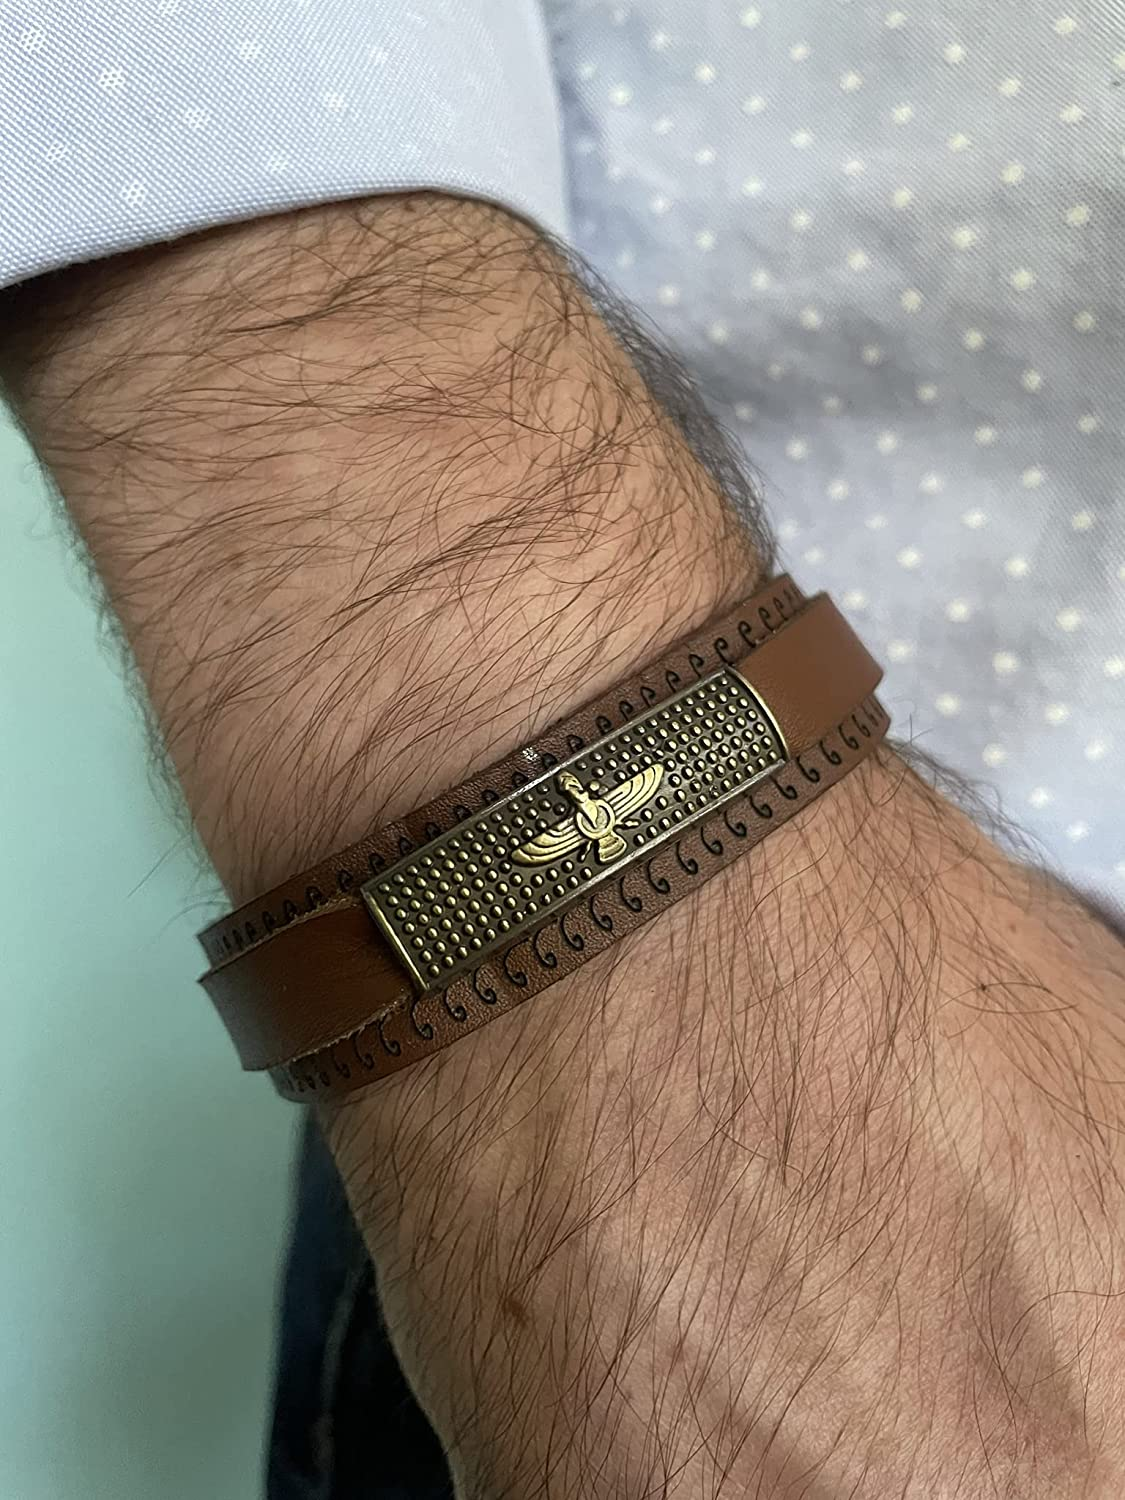 Farvahar Soft Natural and Handmade Bracelet Mazd Ahura Max 44% OFF Leather Cheap mail order shopping